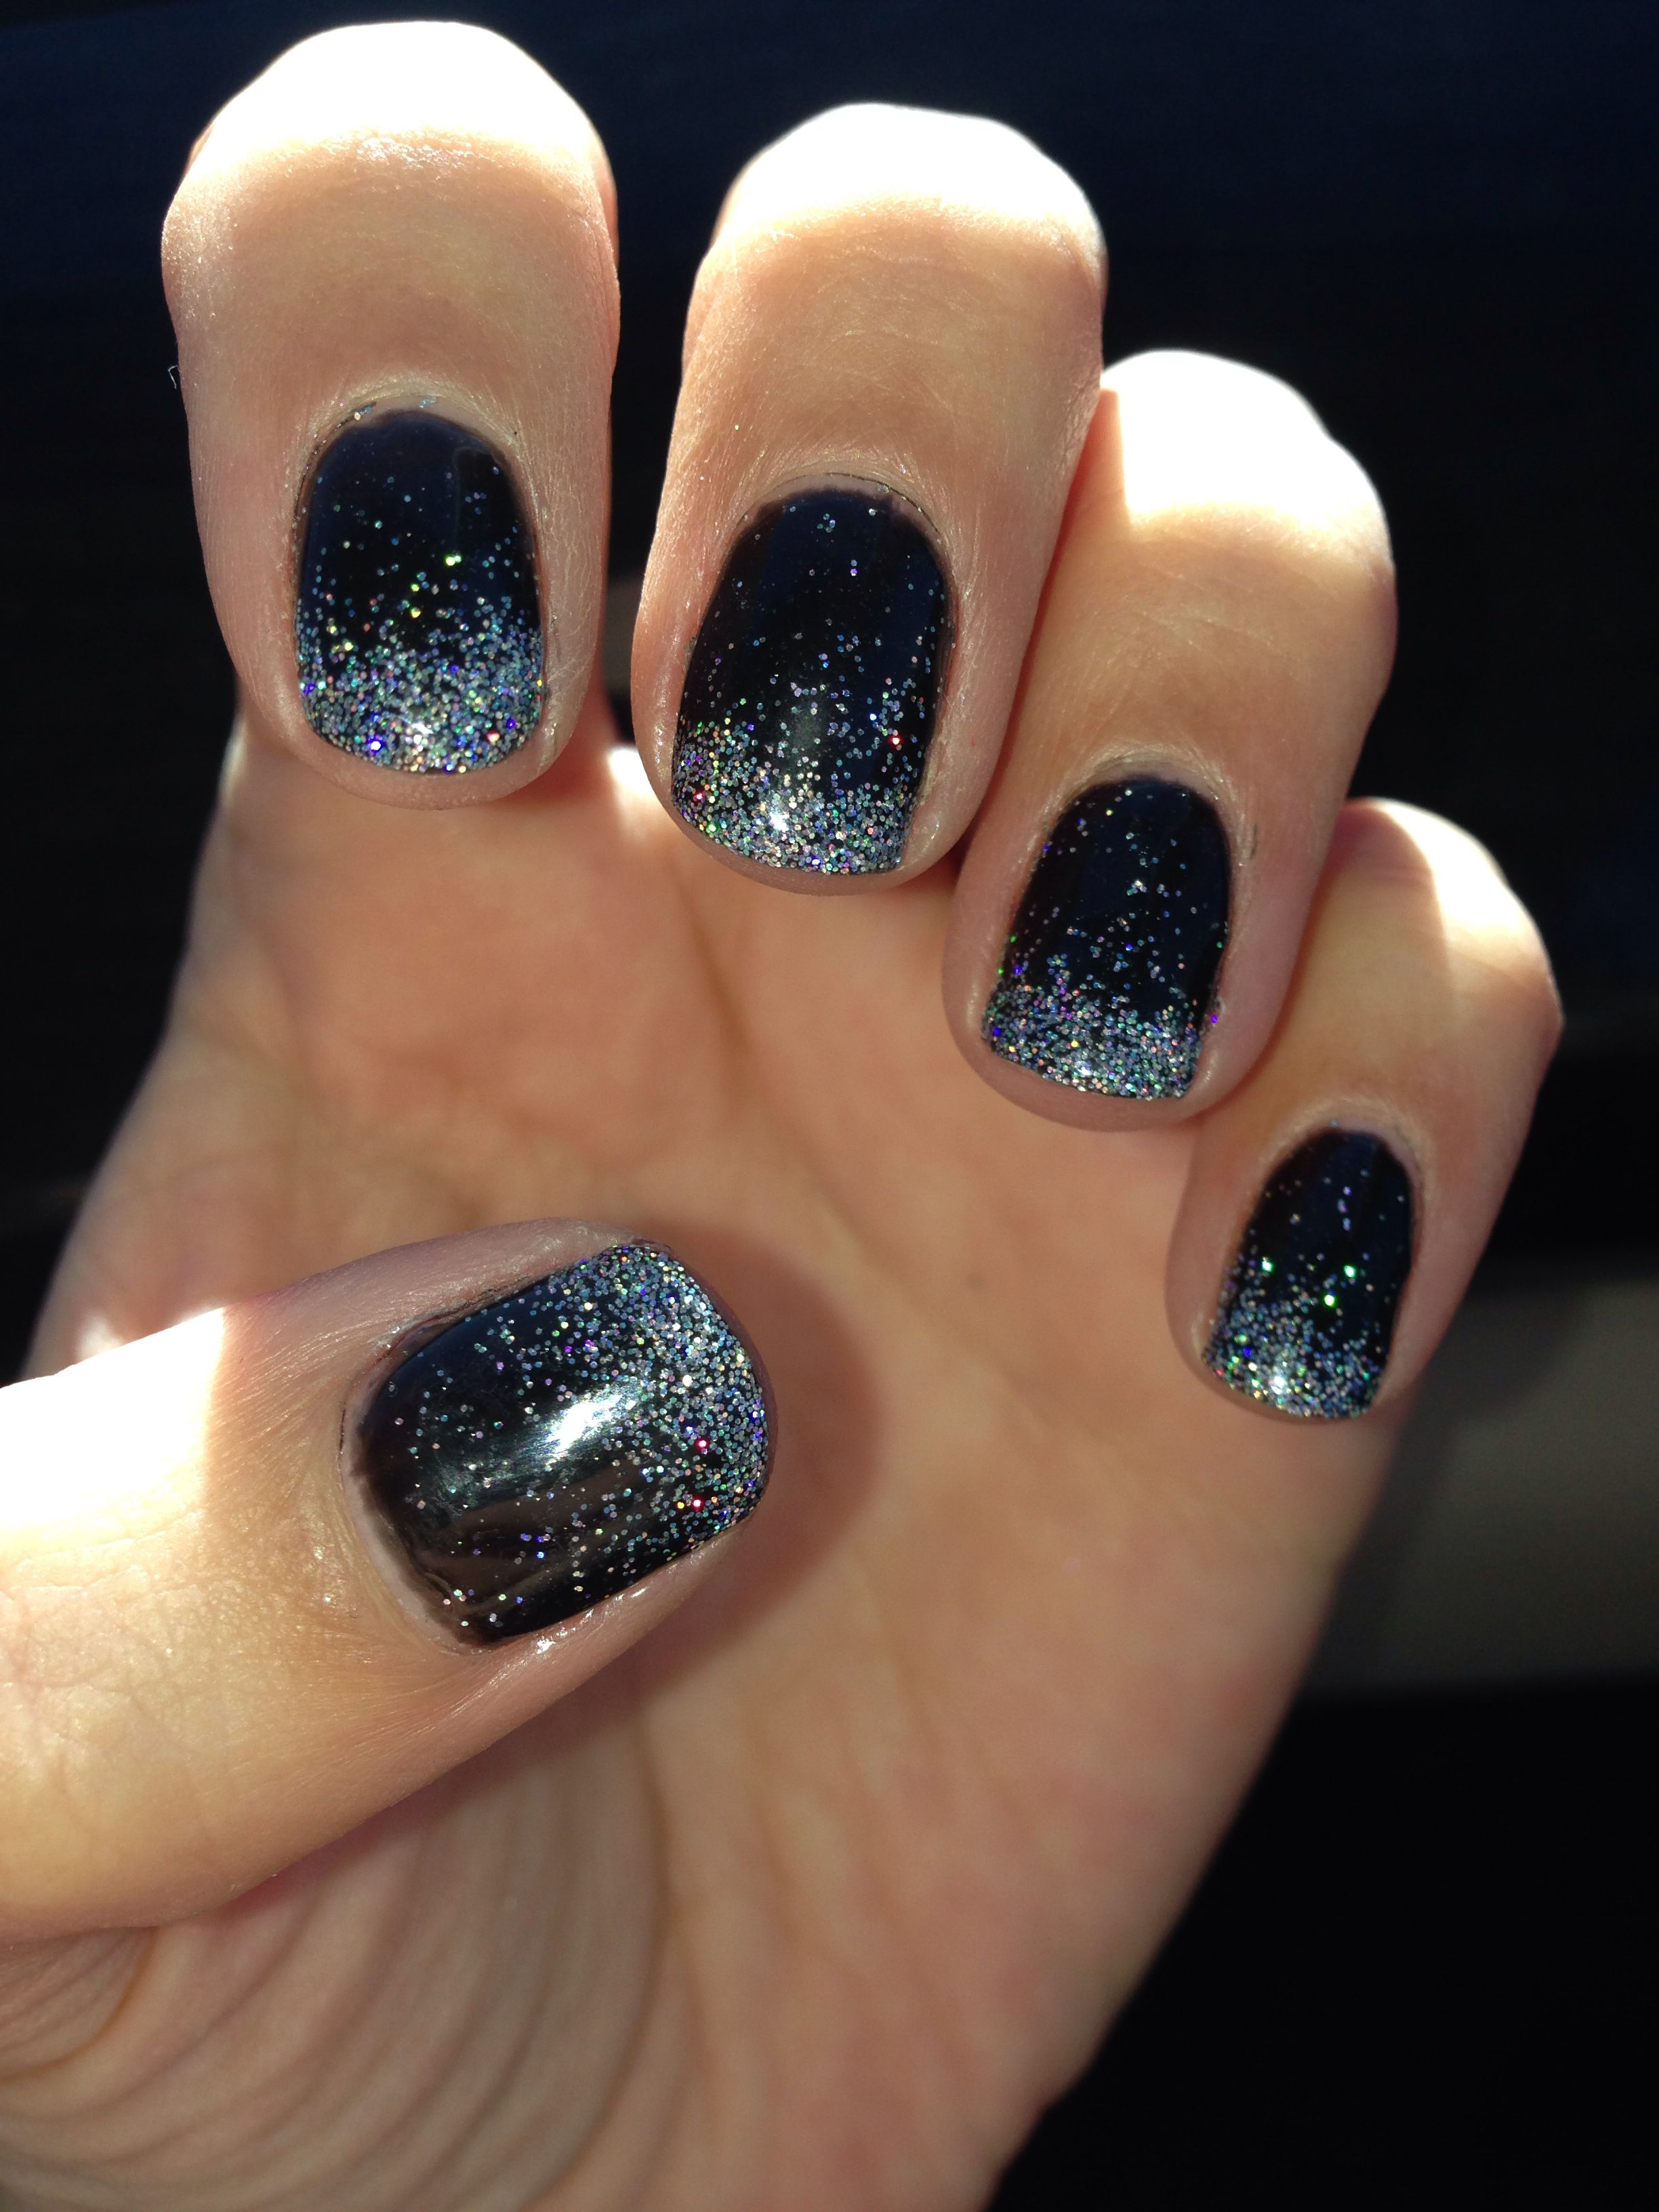 Shellac nails #blackpool | uñas | Pinterest | Uñas gelificadas ...